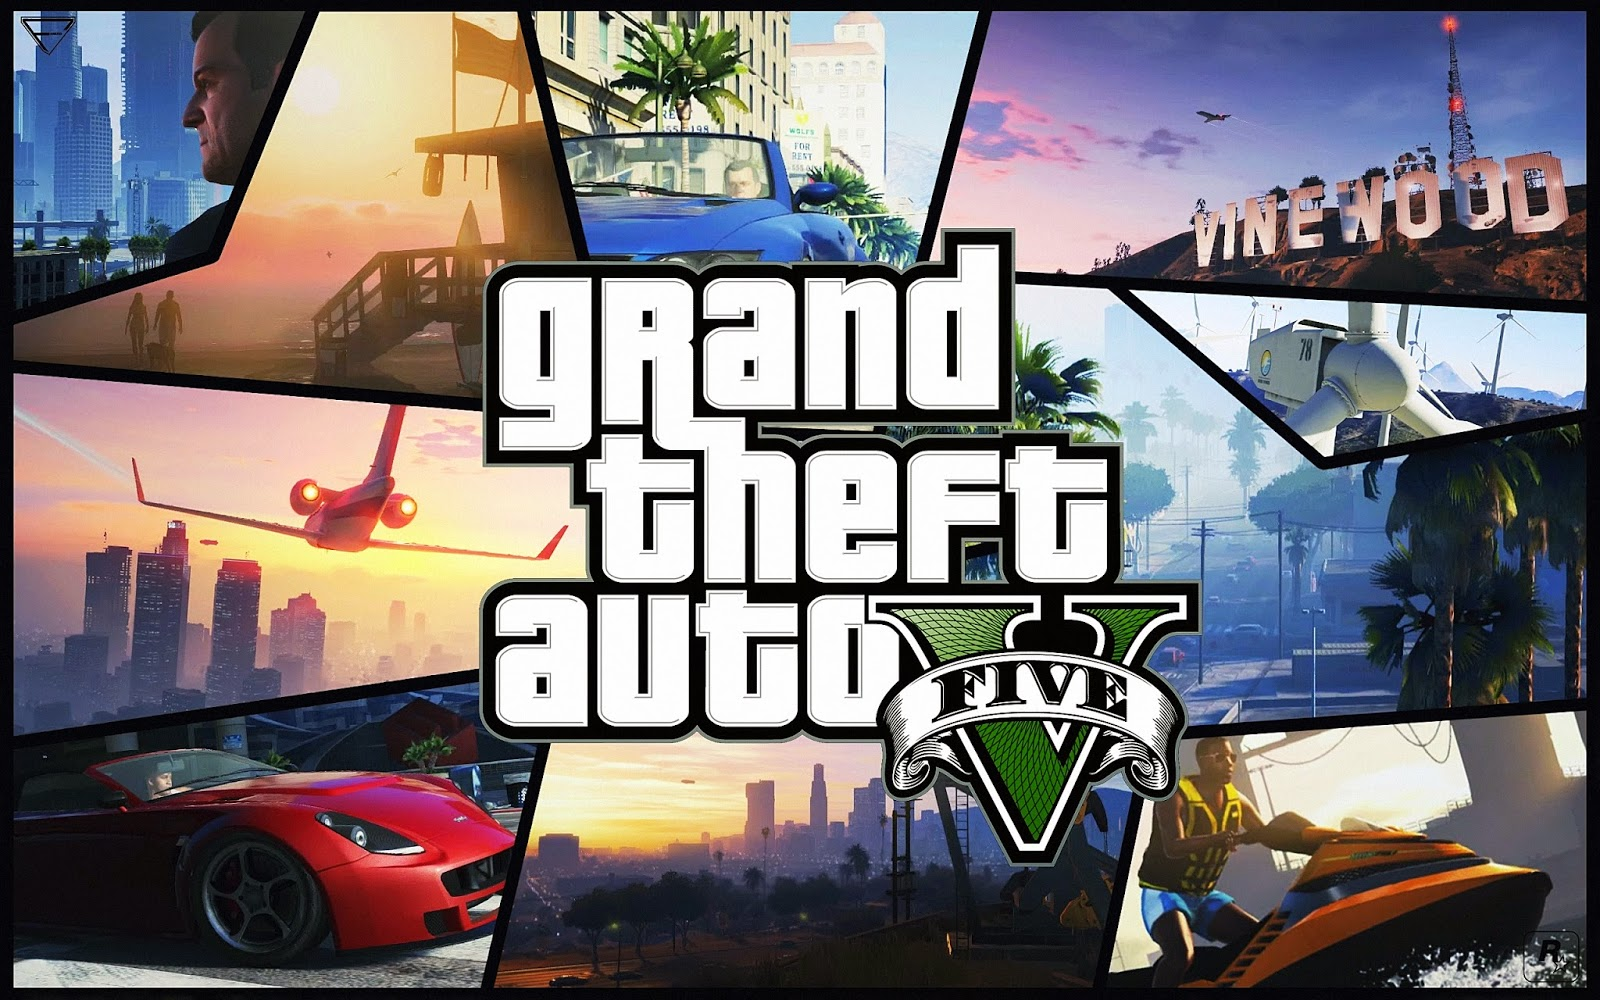 Download gta 5 for pc - gta 5 pc download [direct link]